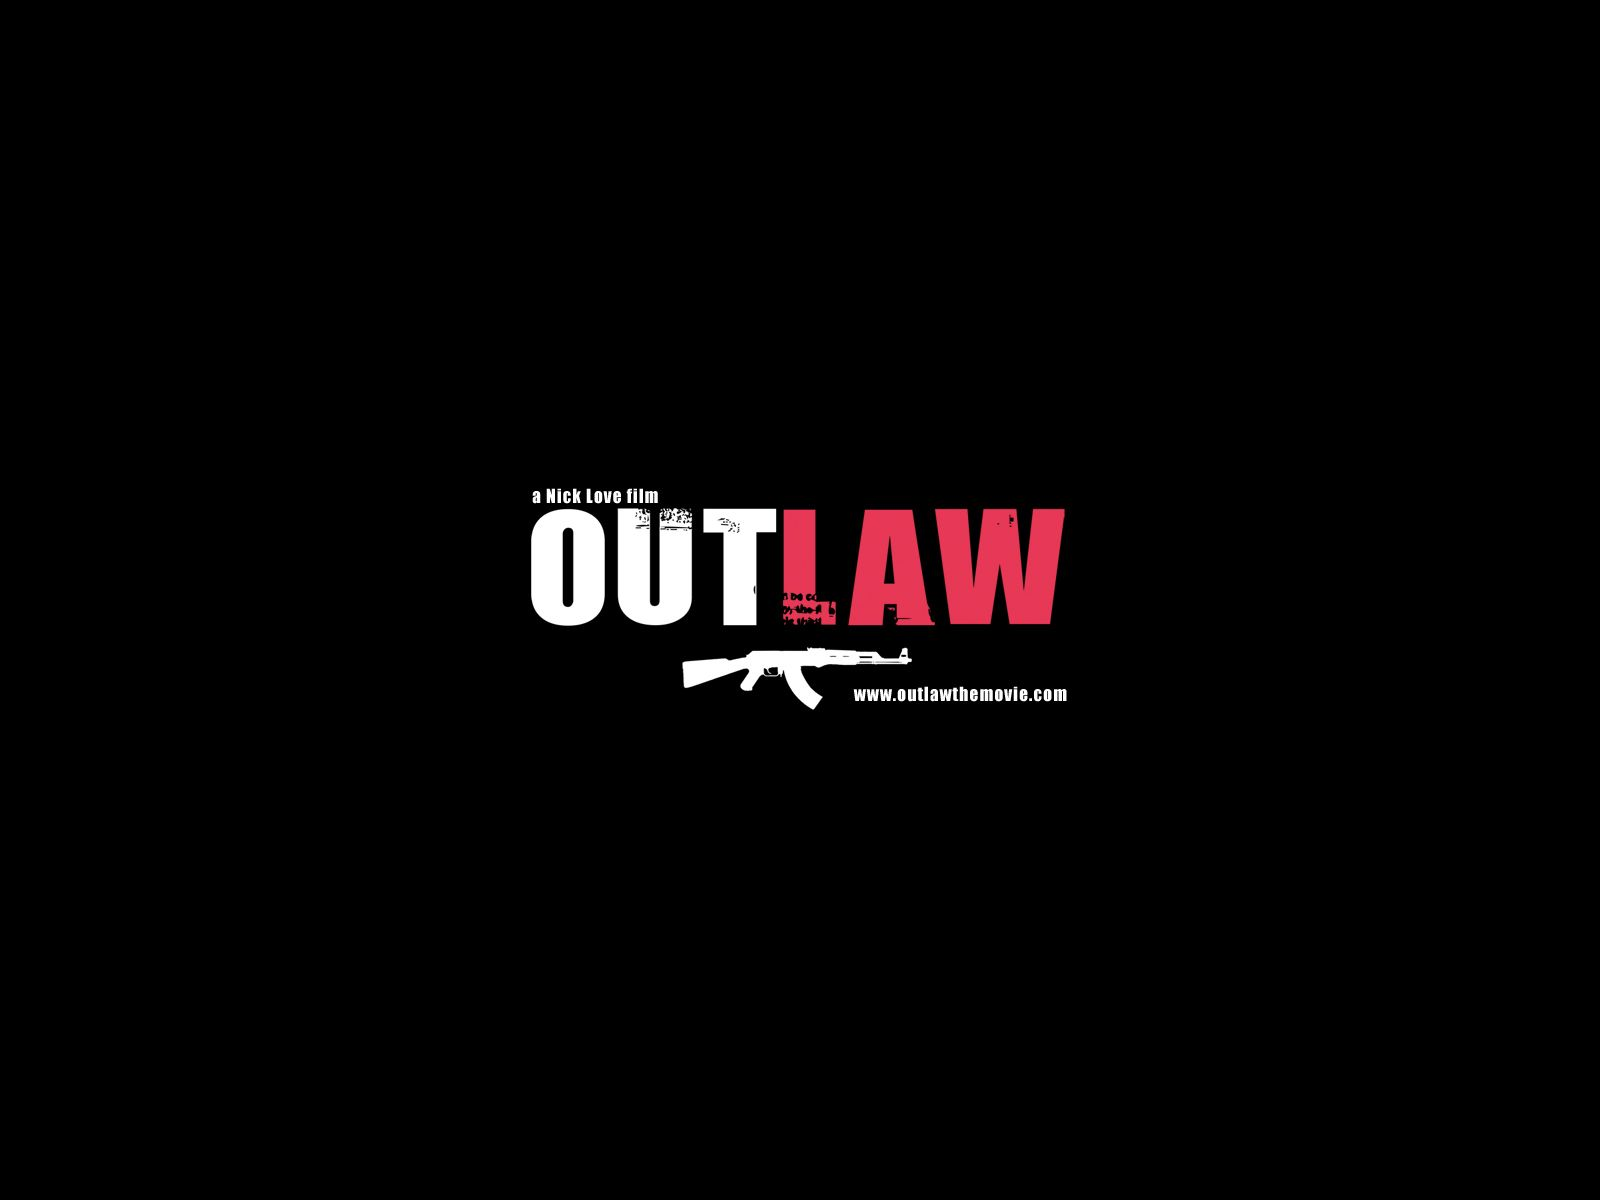 1600x1200 Outlaw Wallpapers, Top 47 Outlaw Wallpapers | Original High .